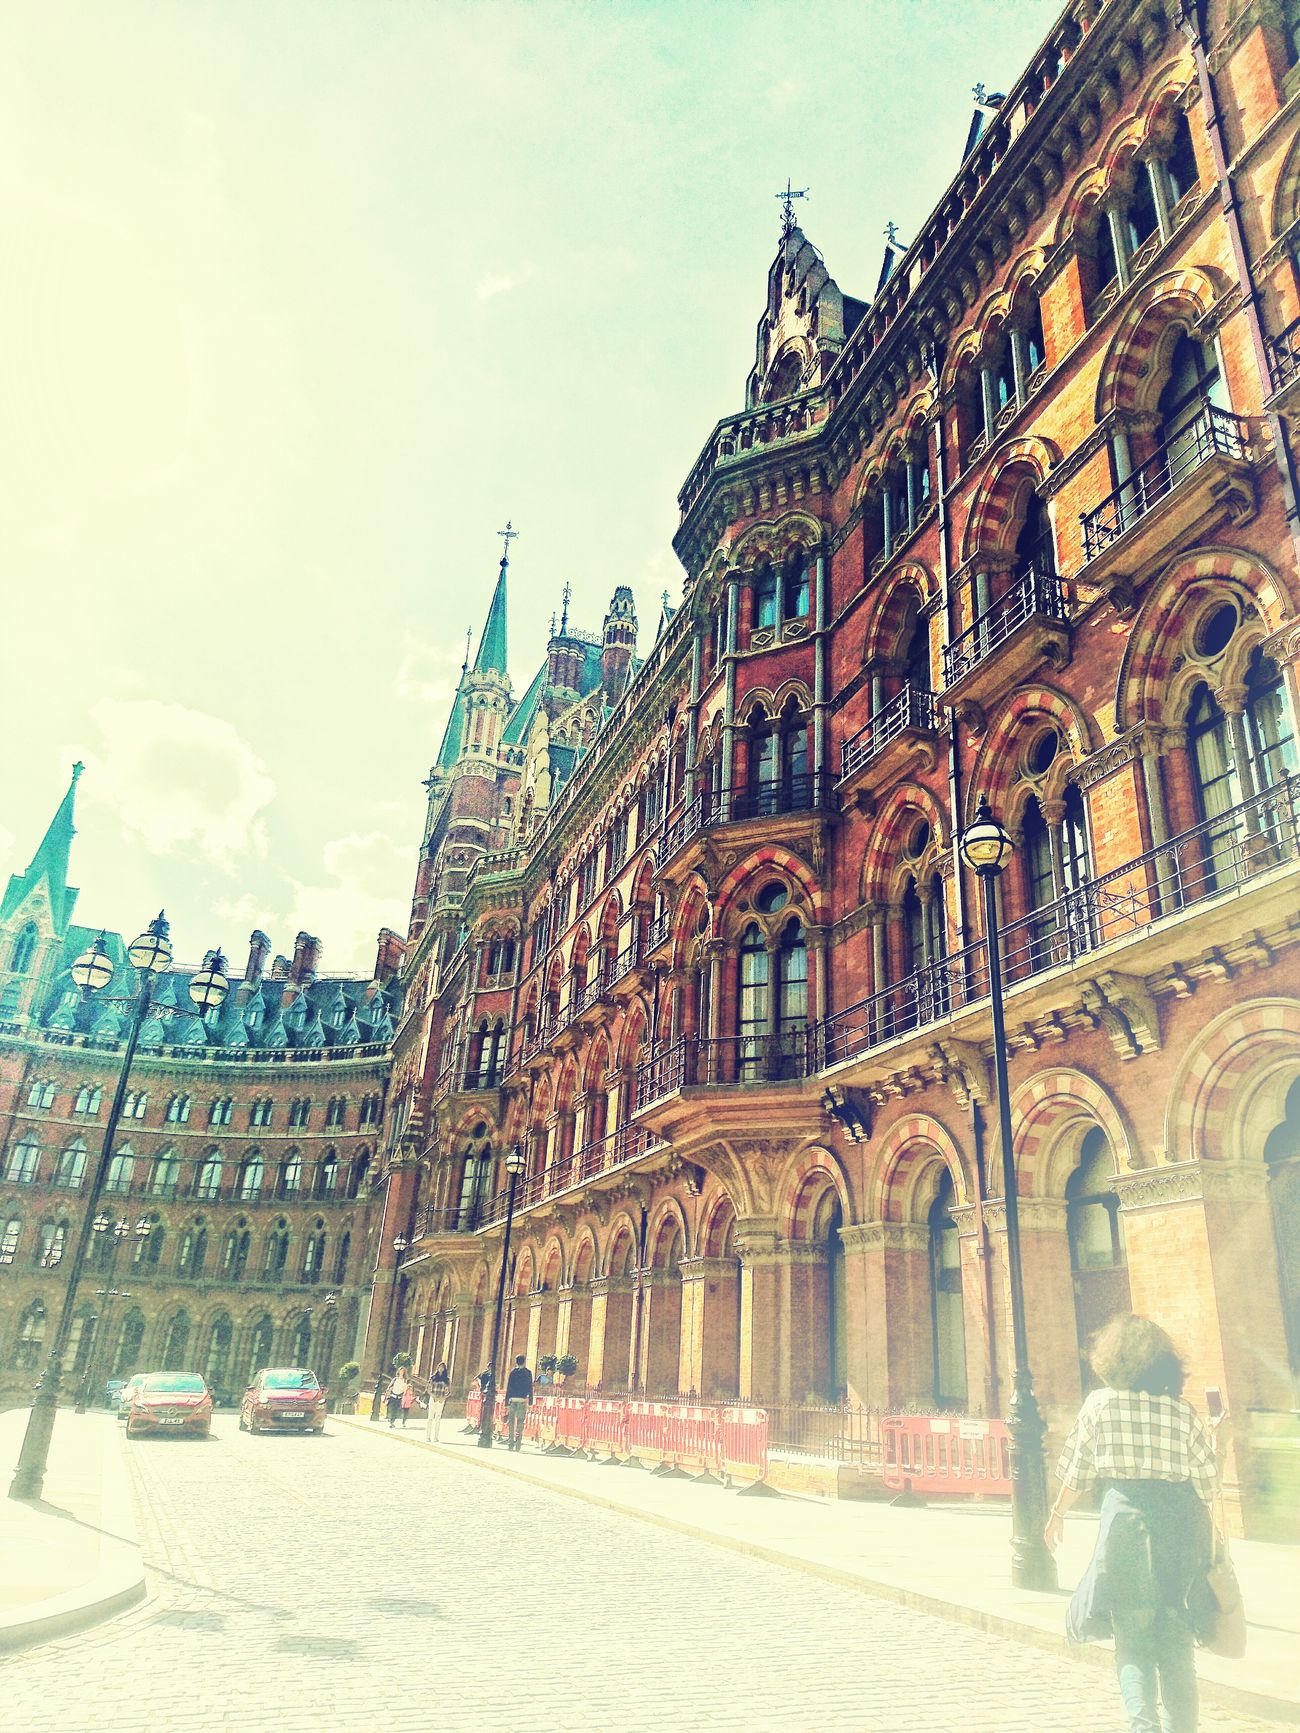 Kings Cross Travel Destinations Harry Potter ❤ Façade Architectural Feature City Life Building Exterior Architecture History Old Town Tall - High Architecture Building Exterior Built Structure Sky City Snow Façade Church Cloud Travel Destinations History Day Outdoors Place Of Worship